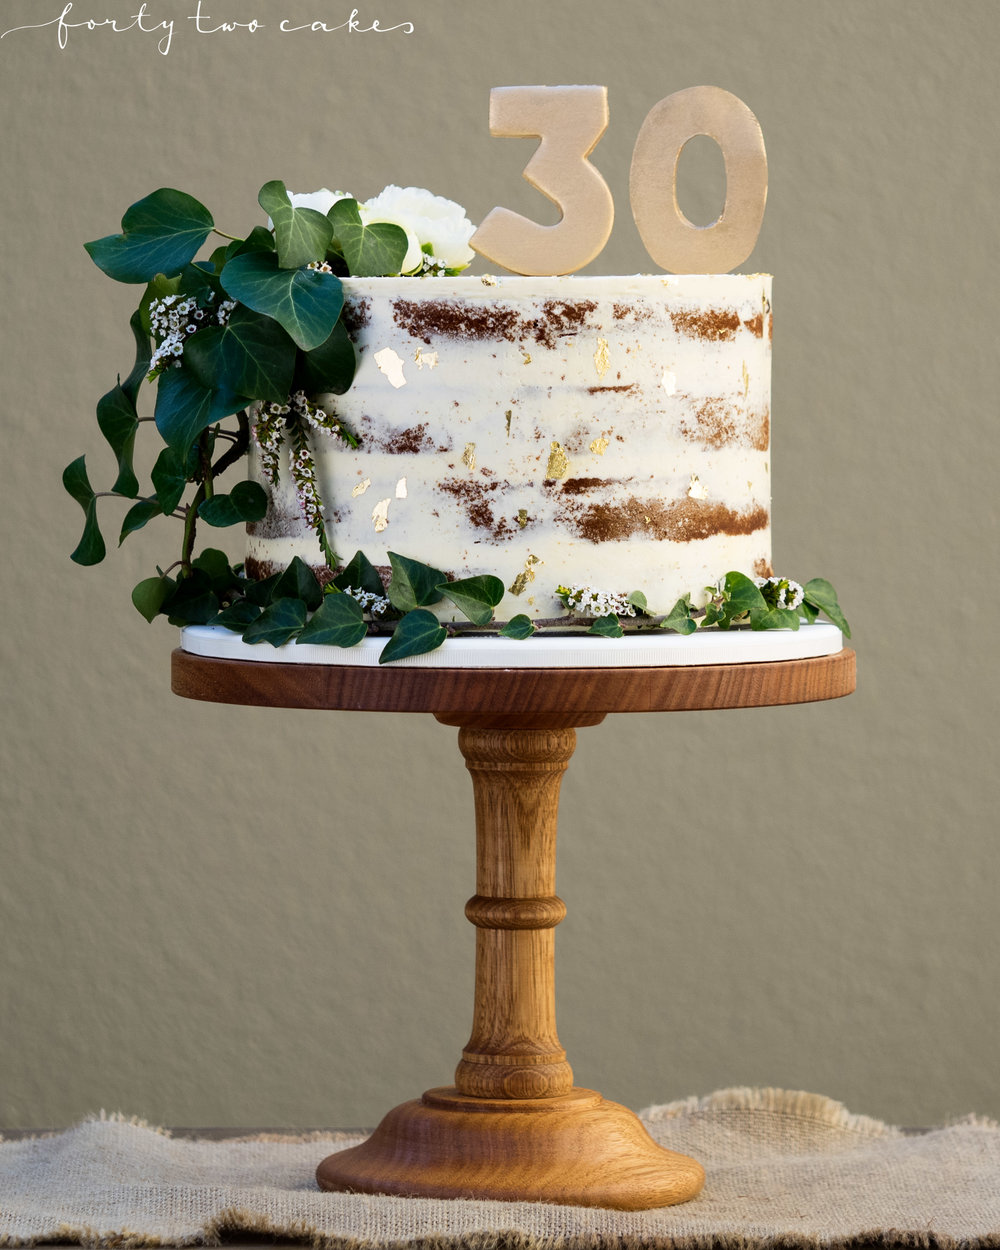 Forty-Two Cakes - Seminaked-01-4.jpg